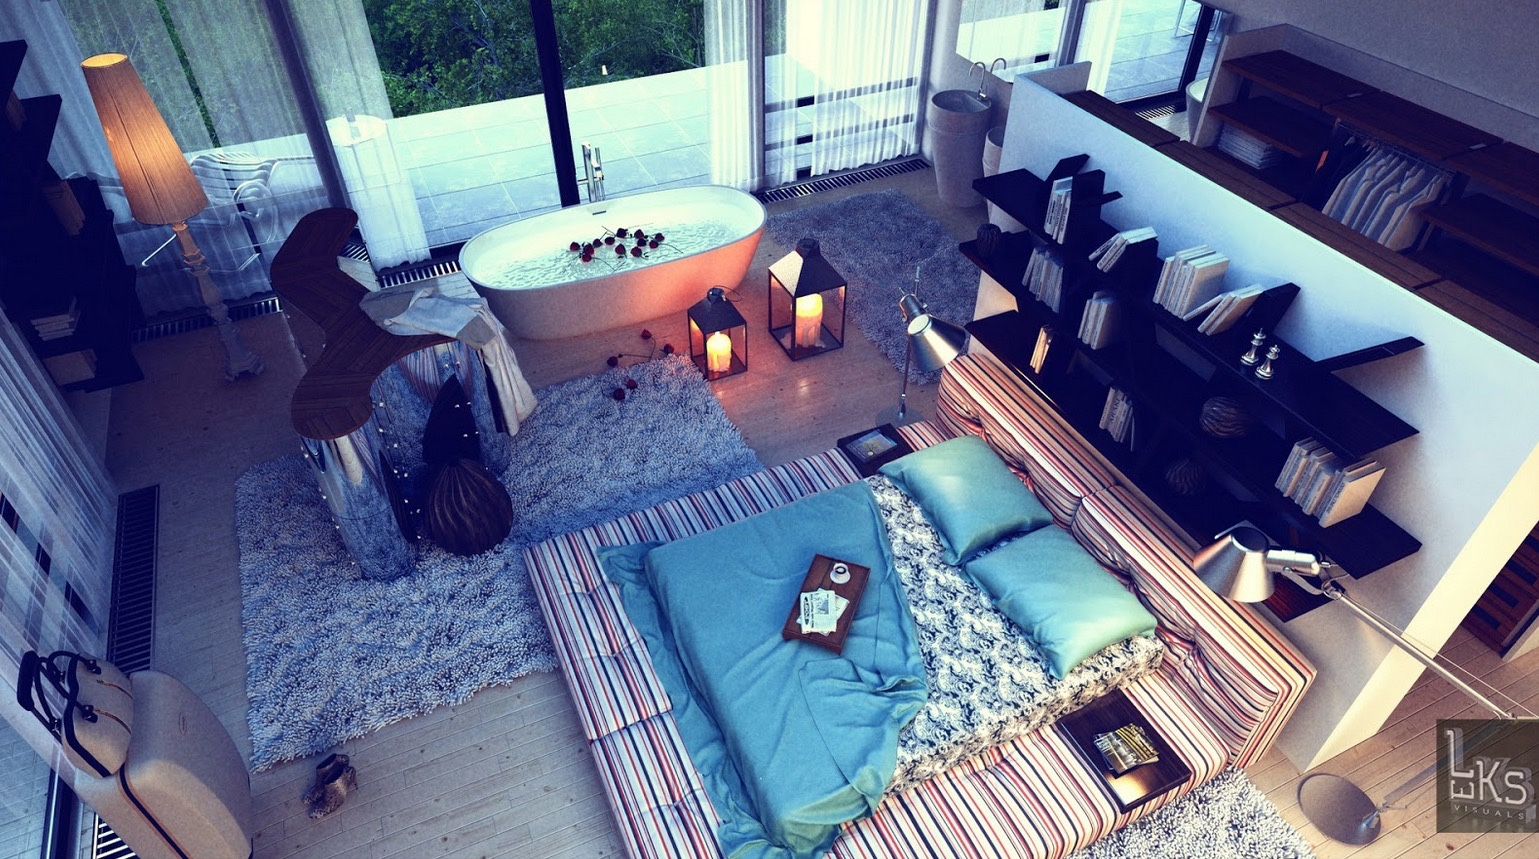 Beautiful Bedrooms Perfect For Lounging All Day - Beautiful bedrooms perfect for lounging all day